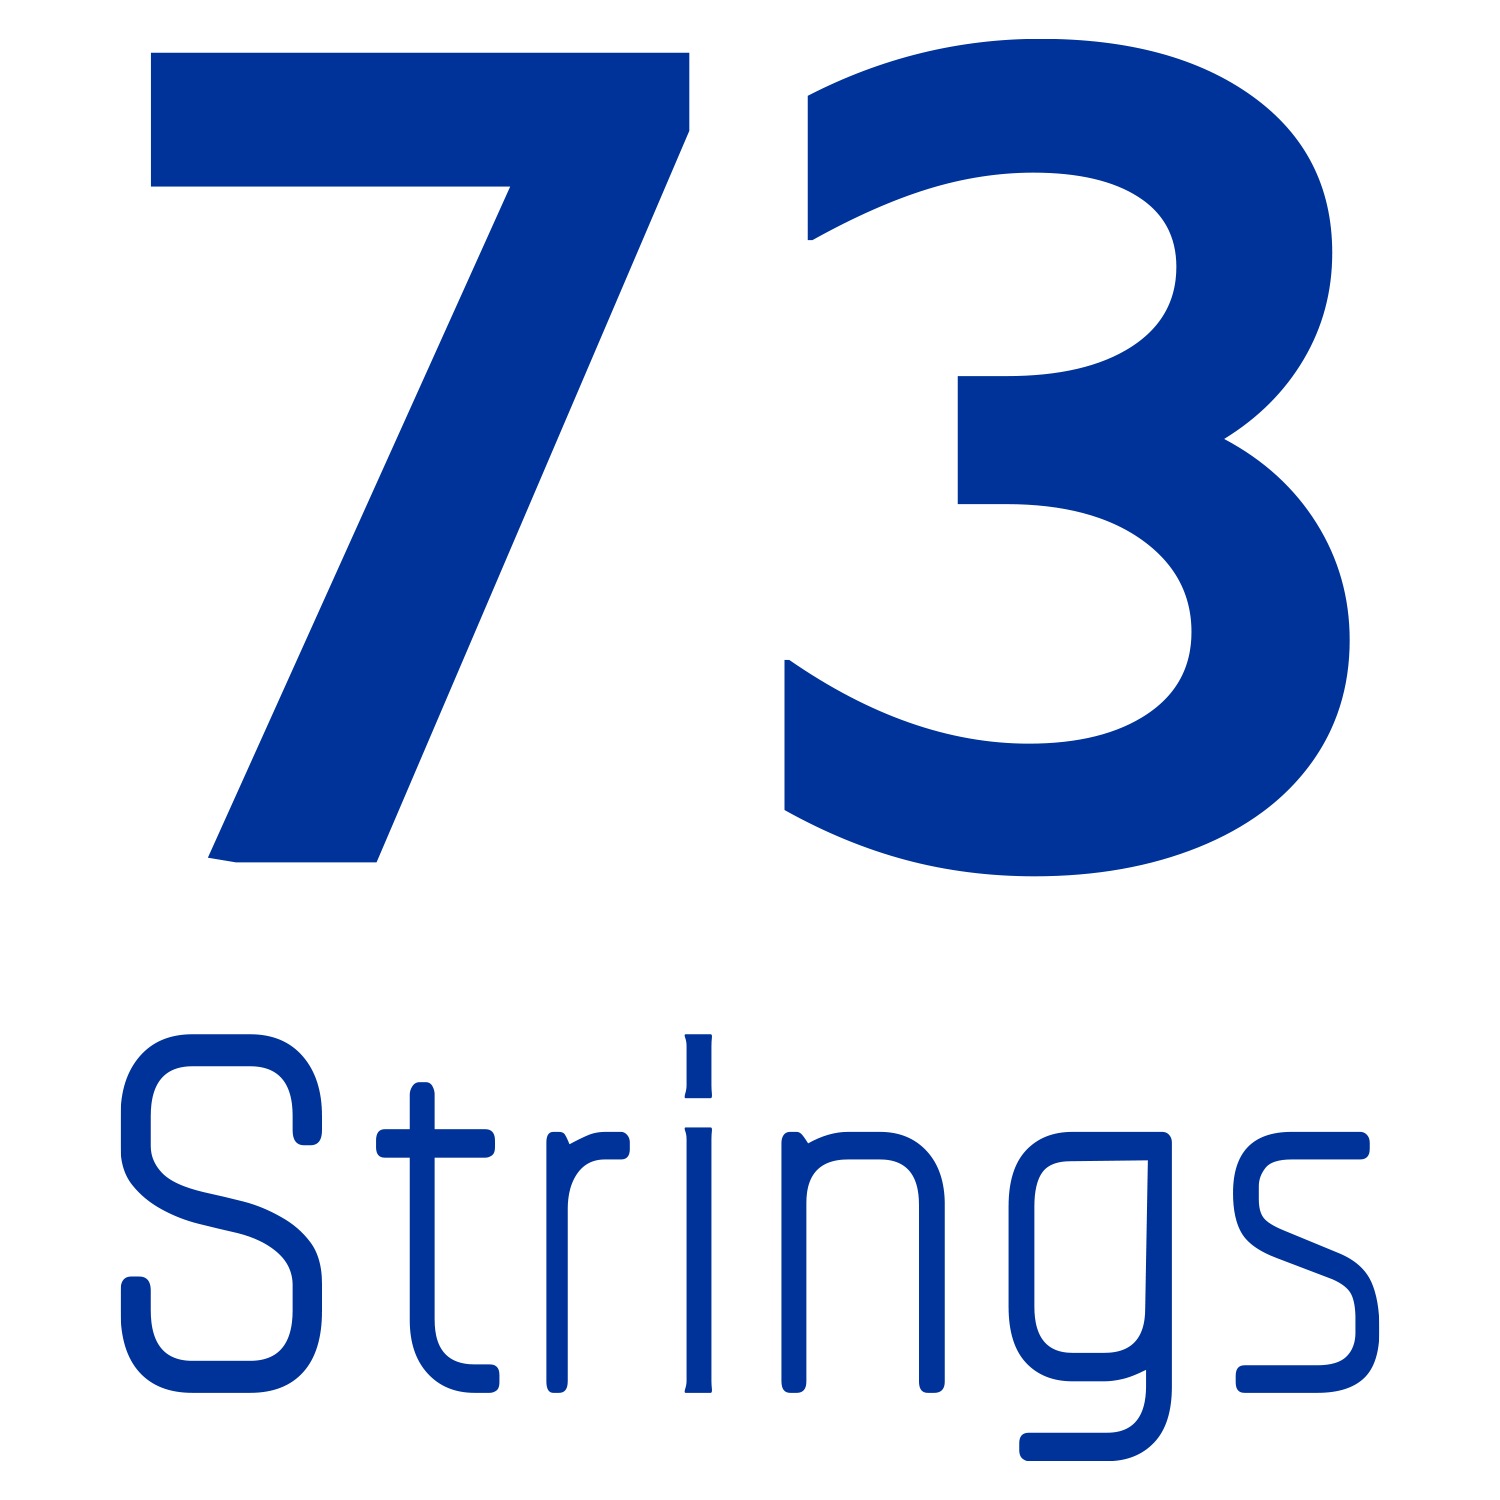 Former Duff & Phelps EMEA Leader Yann Magnan joins 73 Strings as Co-founder and CEO